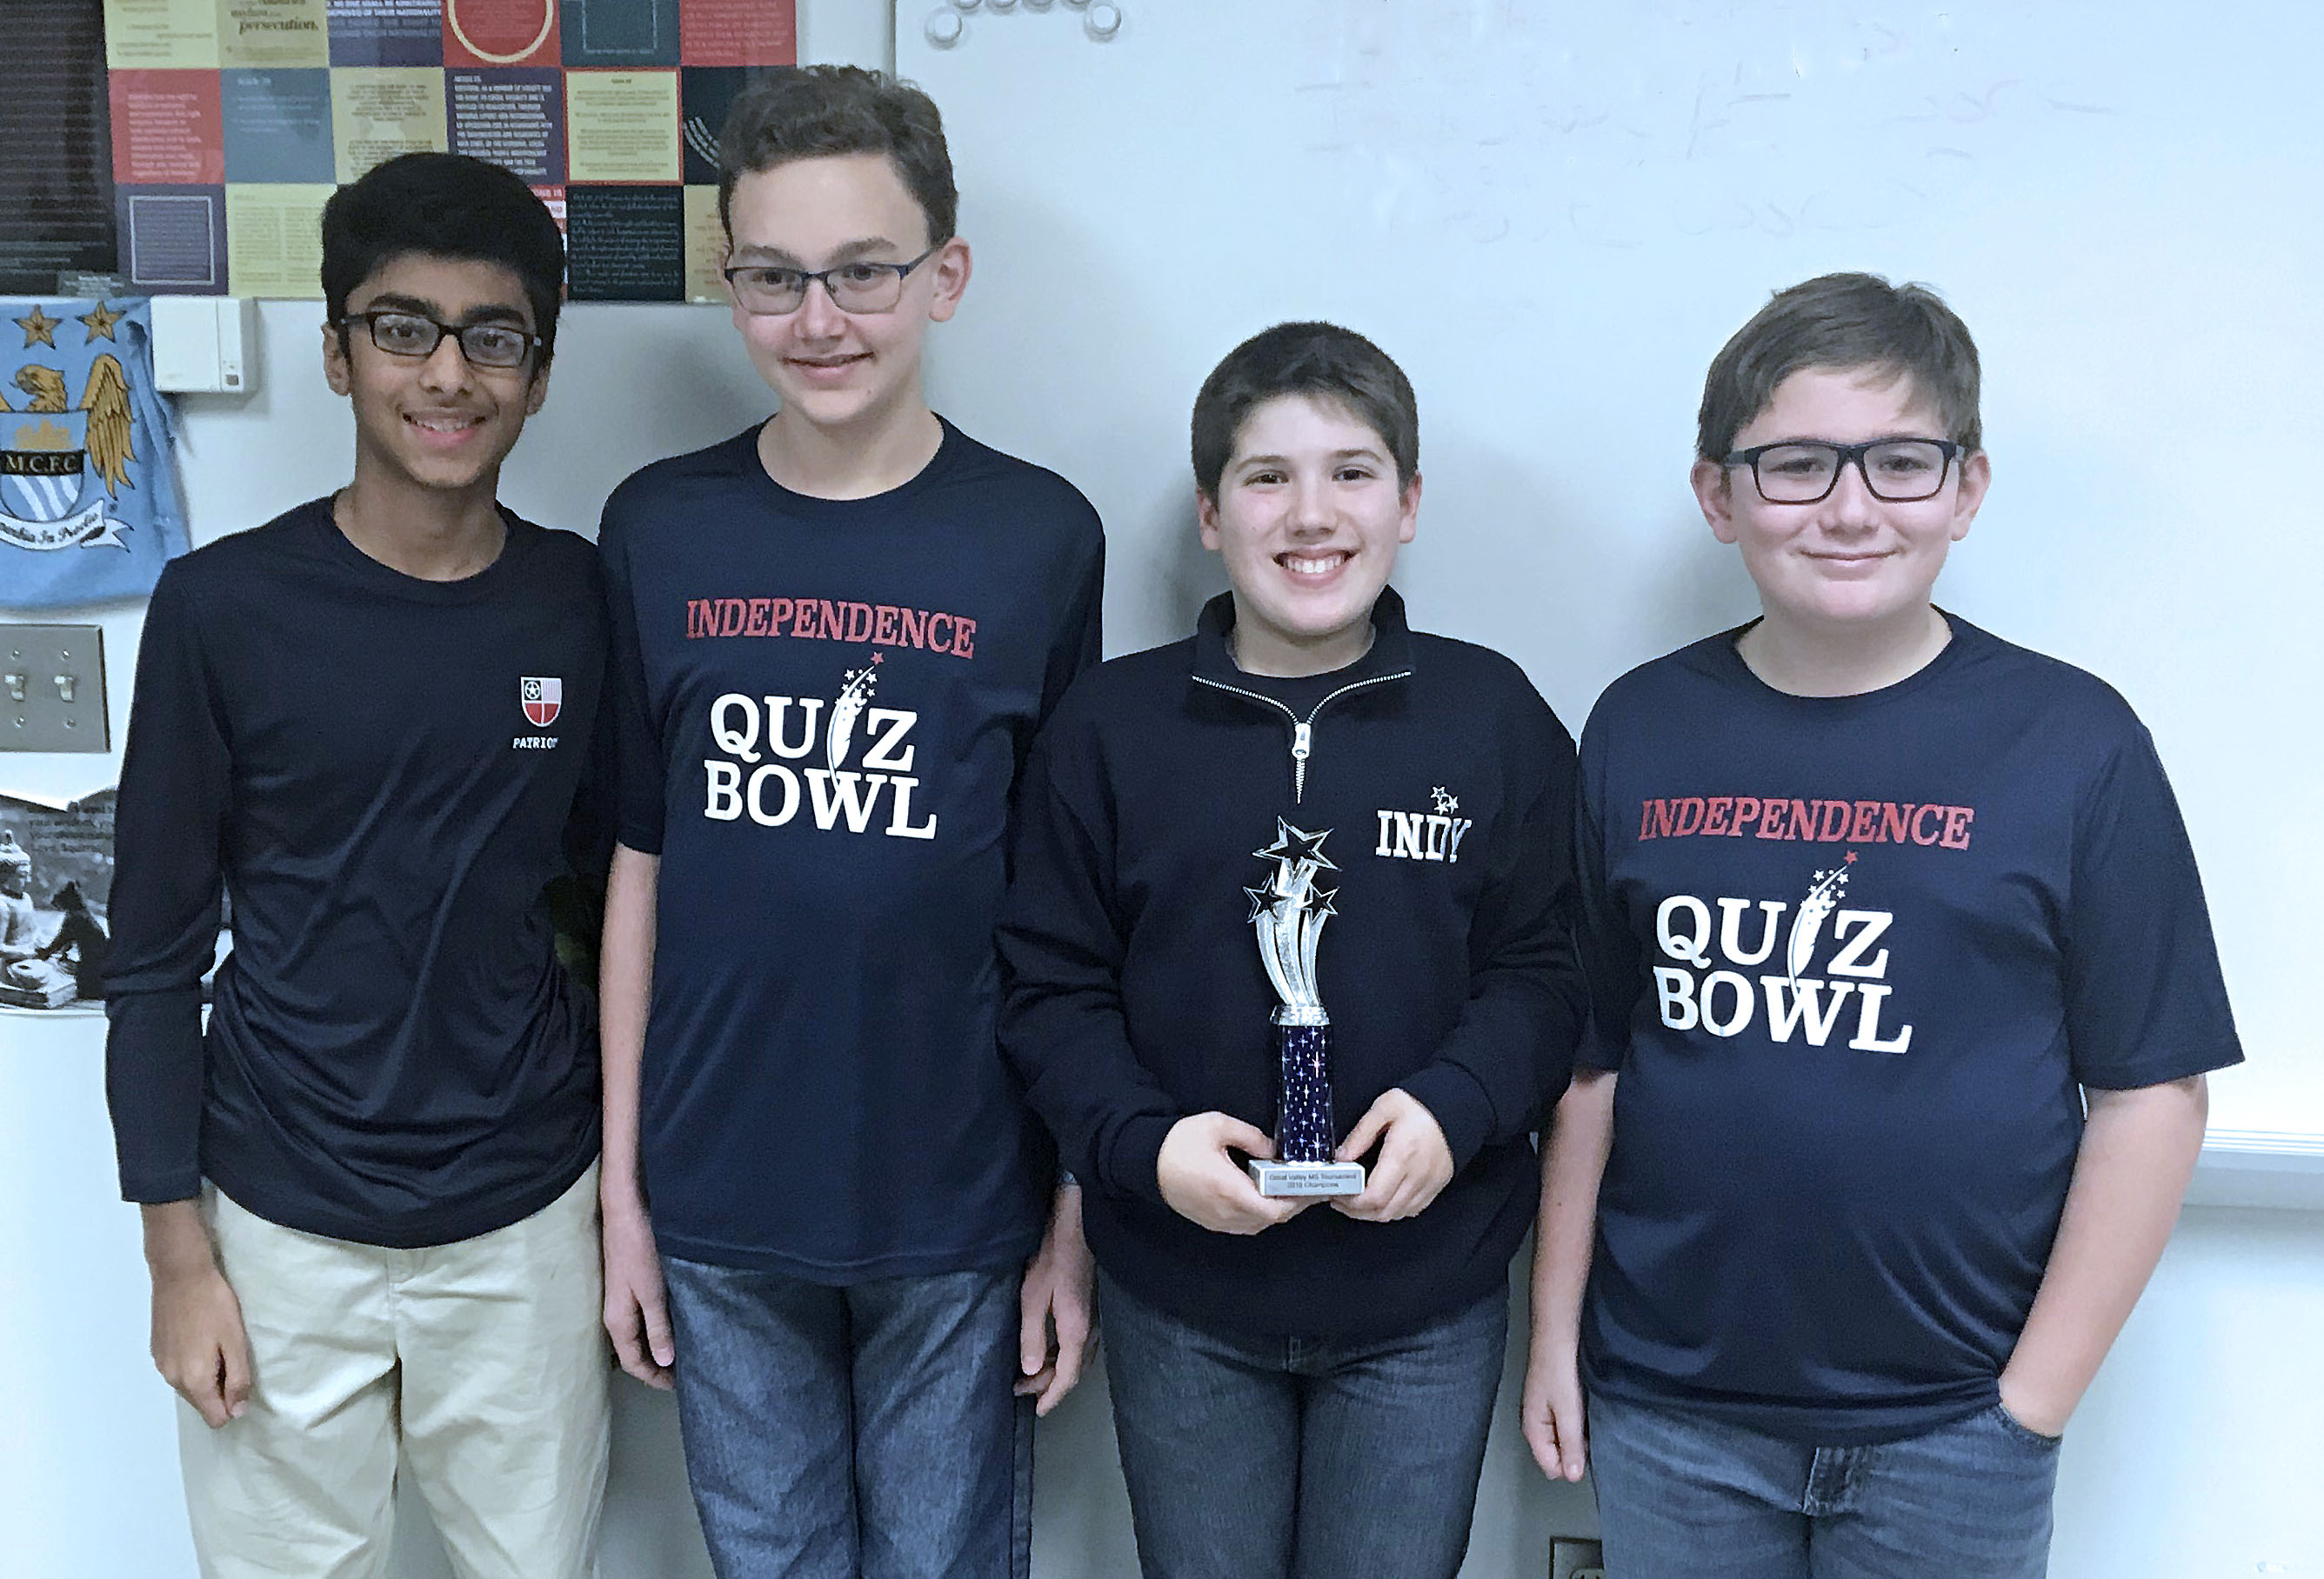 Indy qualifies Quiz Bowl team for 2019 Nationals